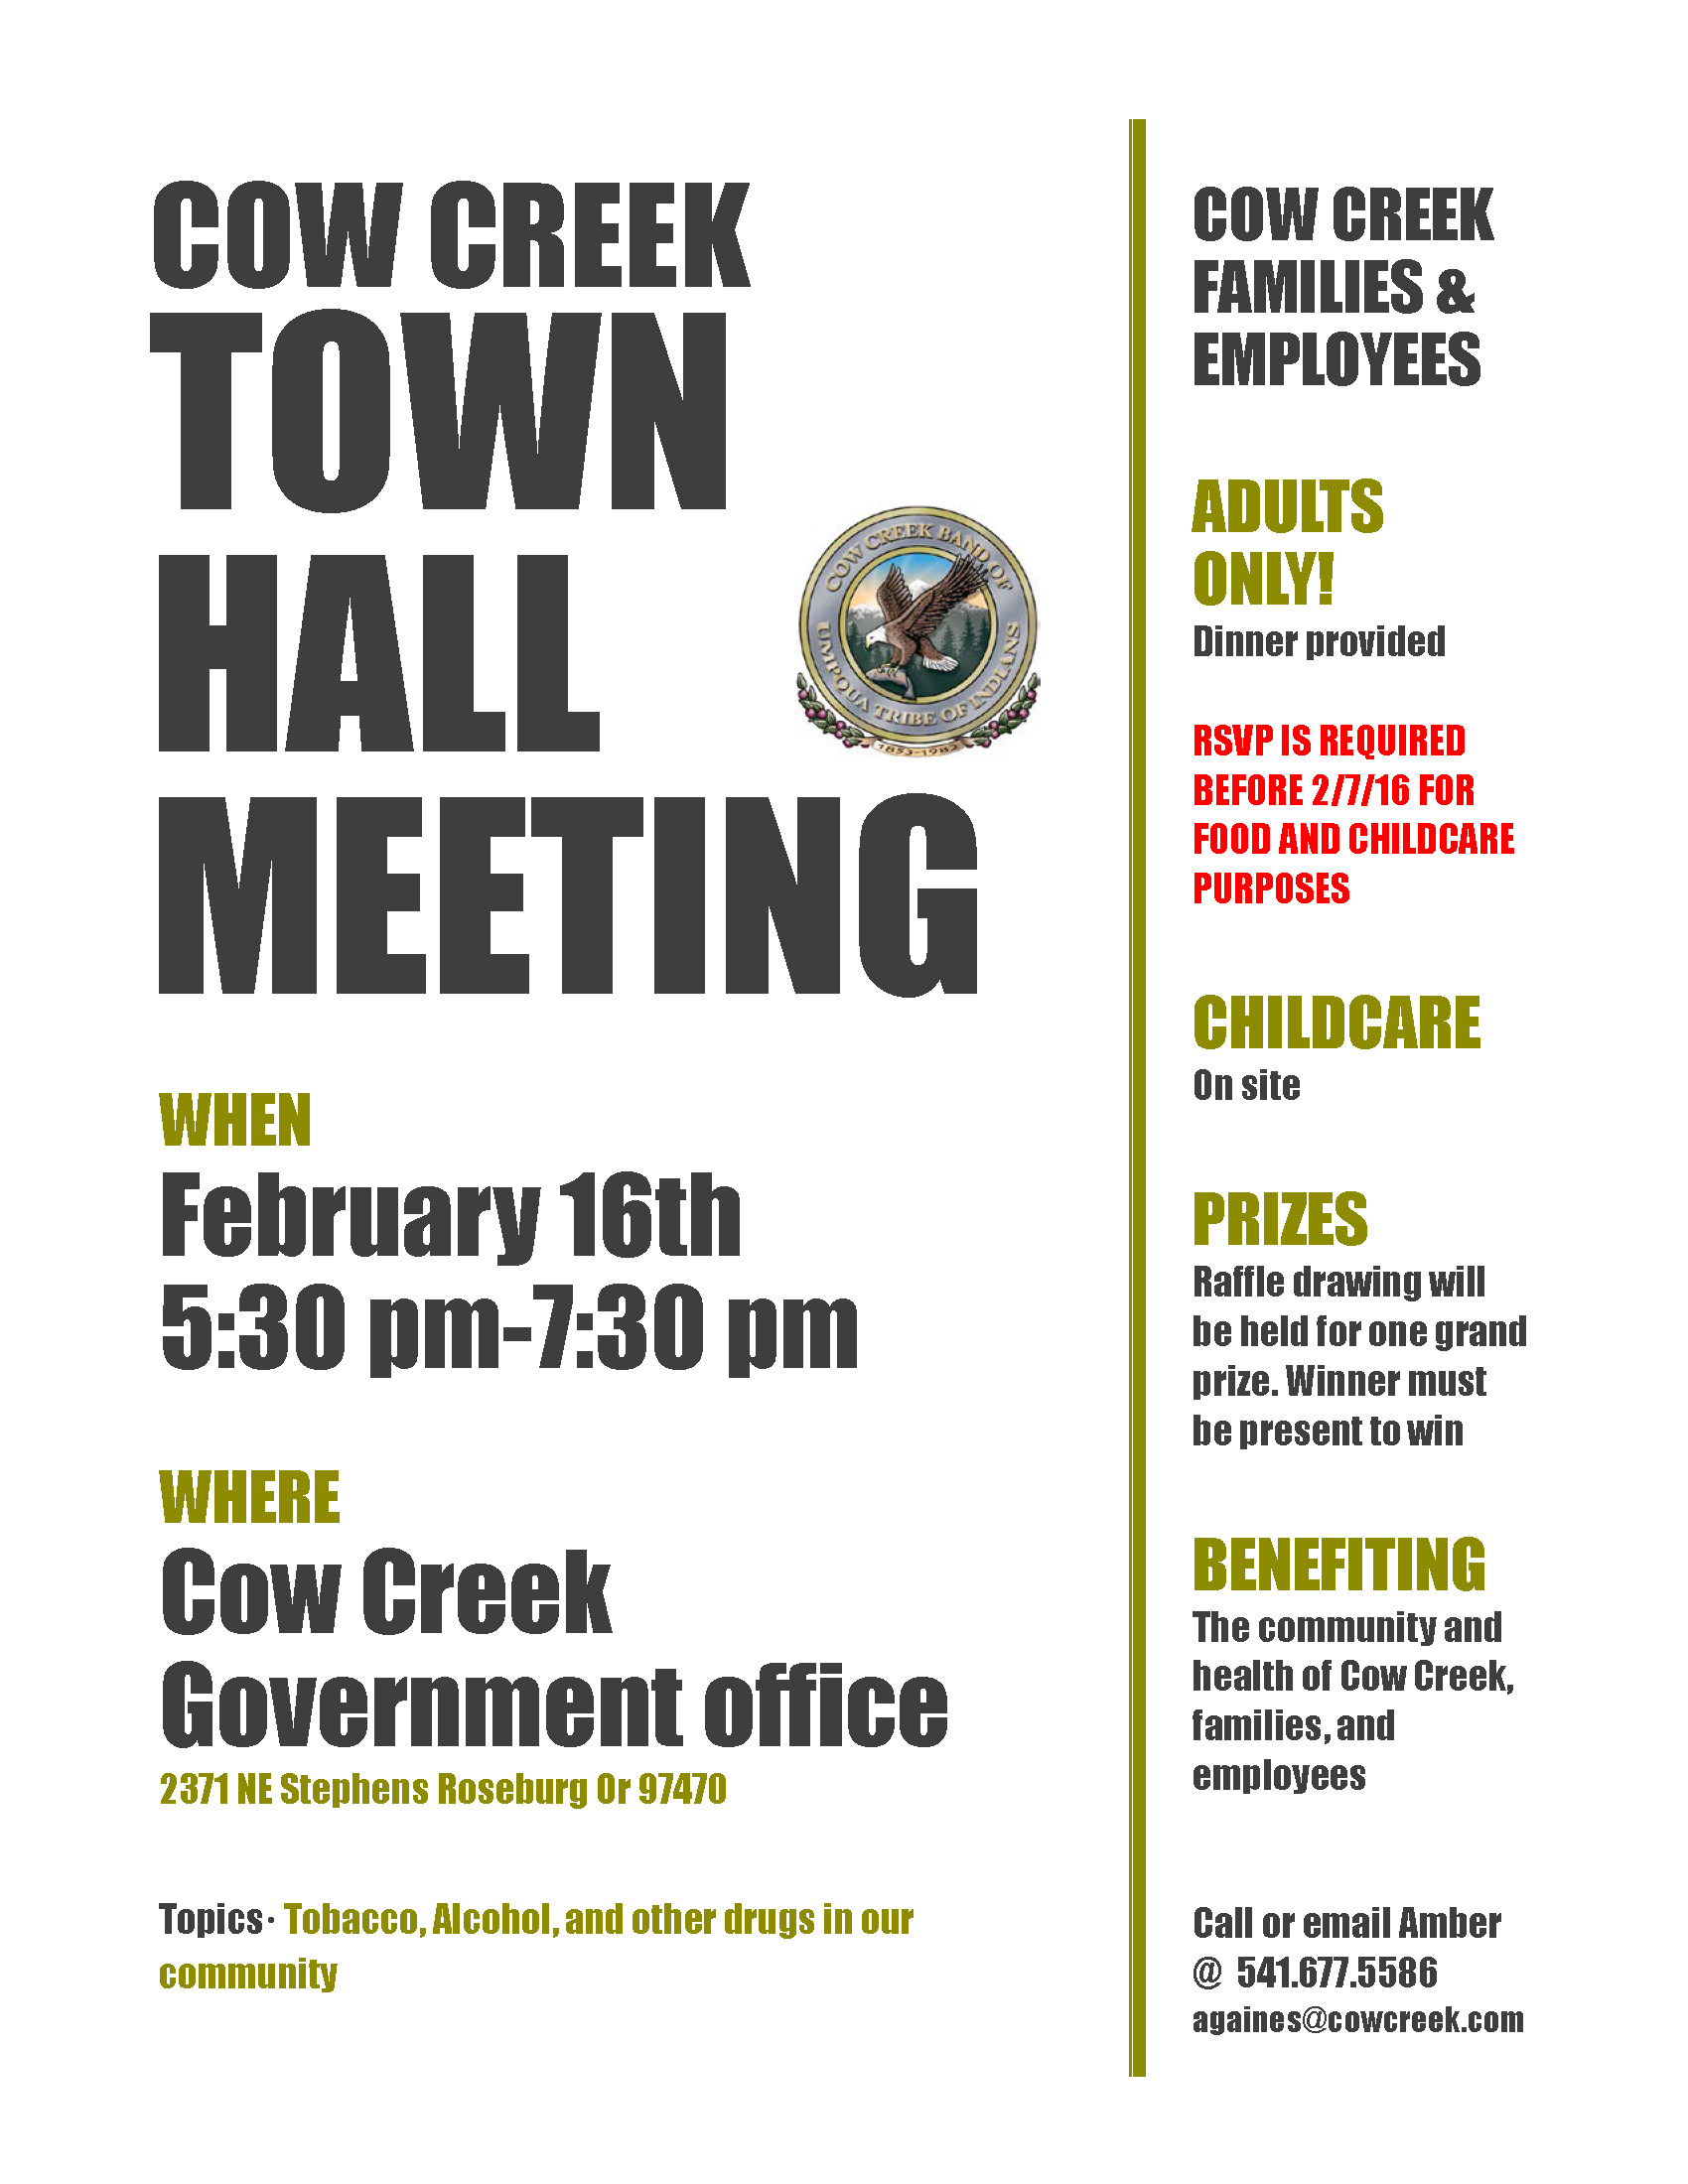 Cow Creek Town Hall Meeting – Families & Employees